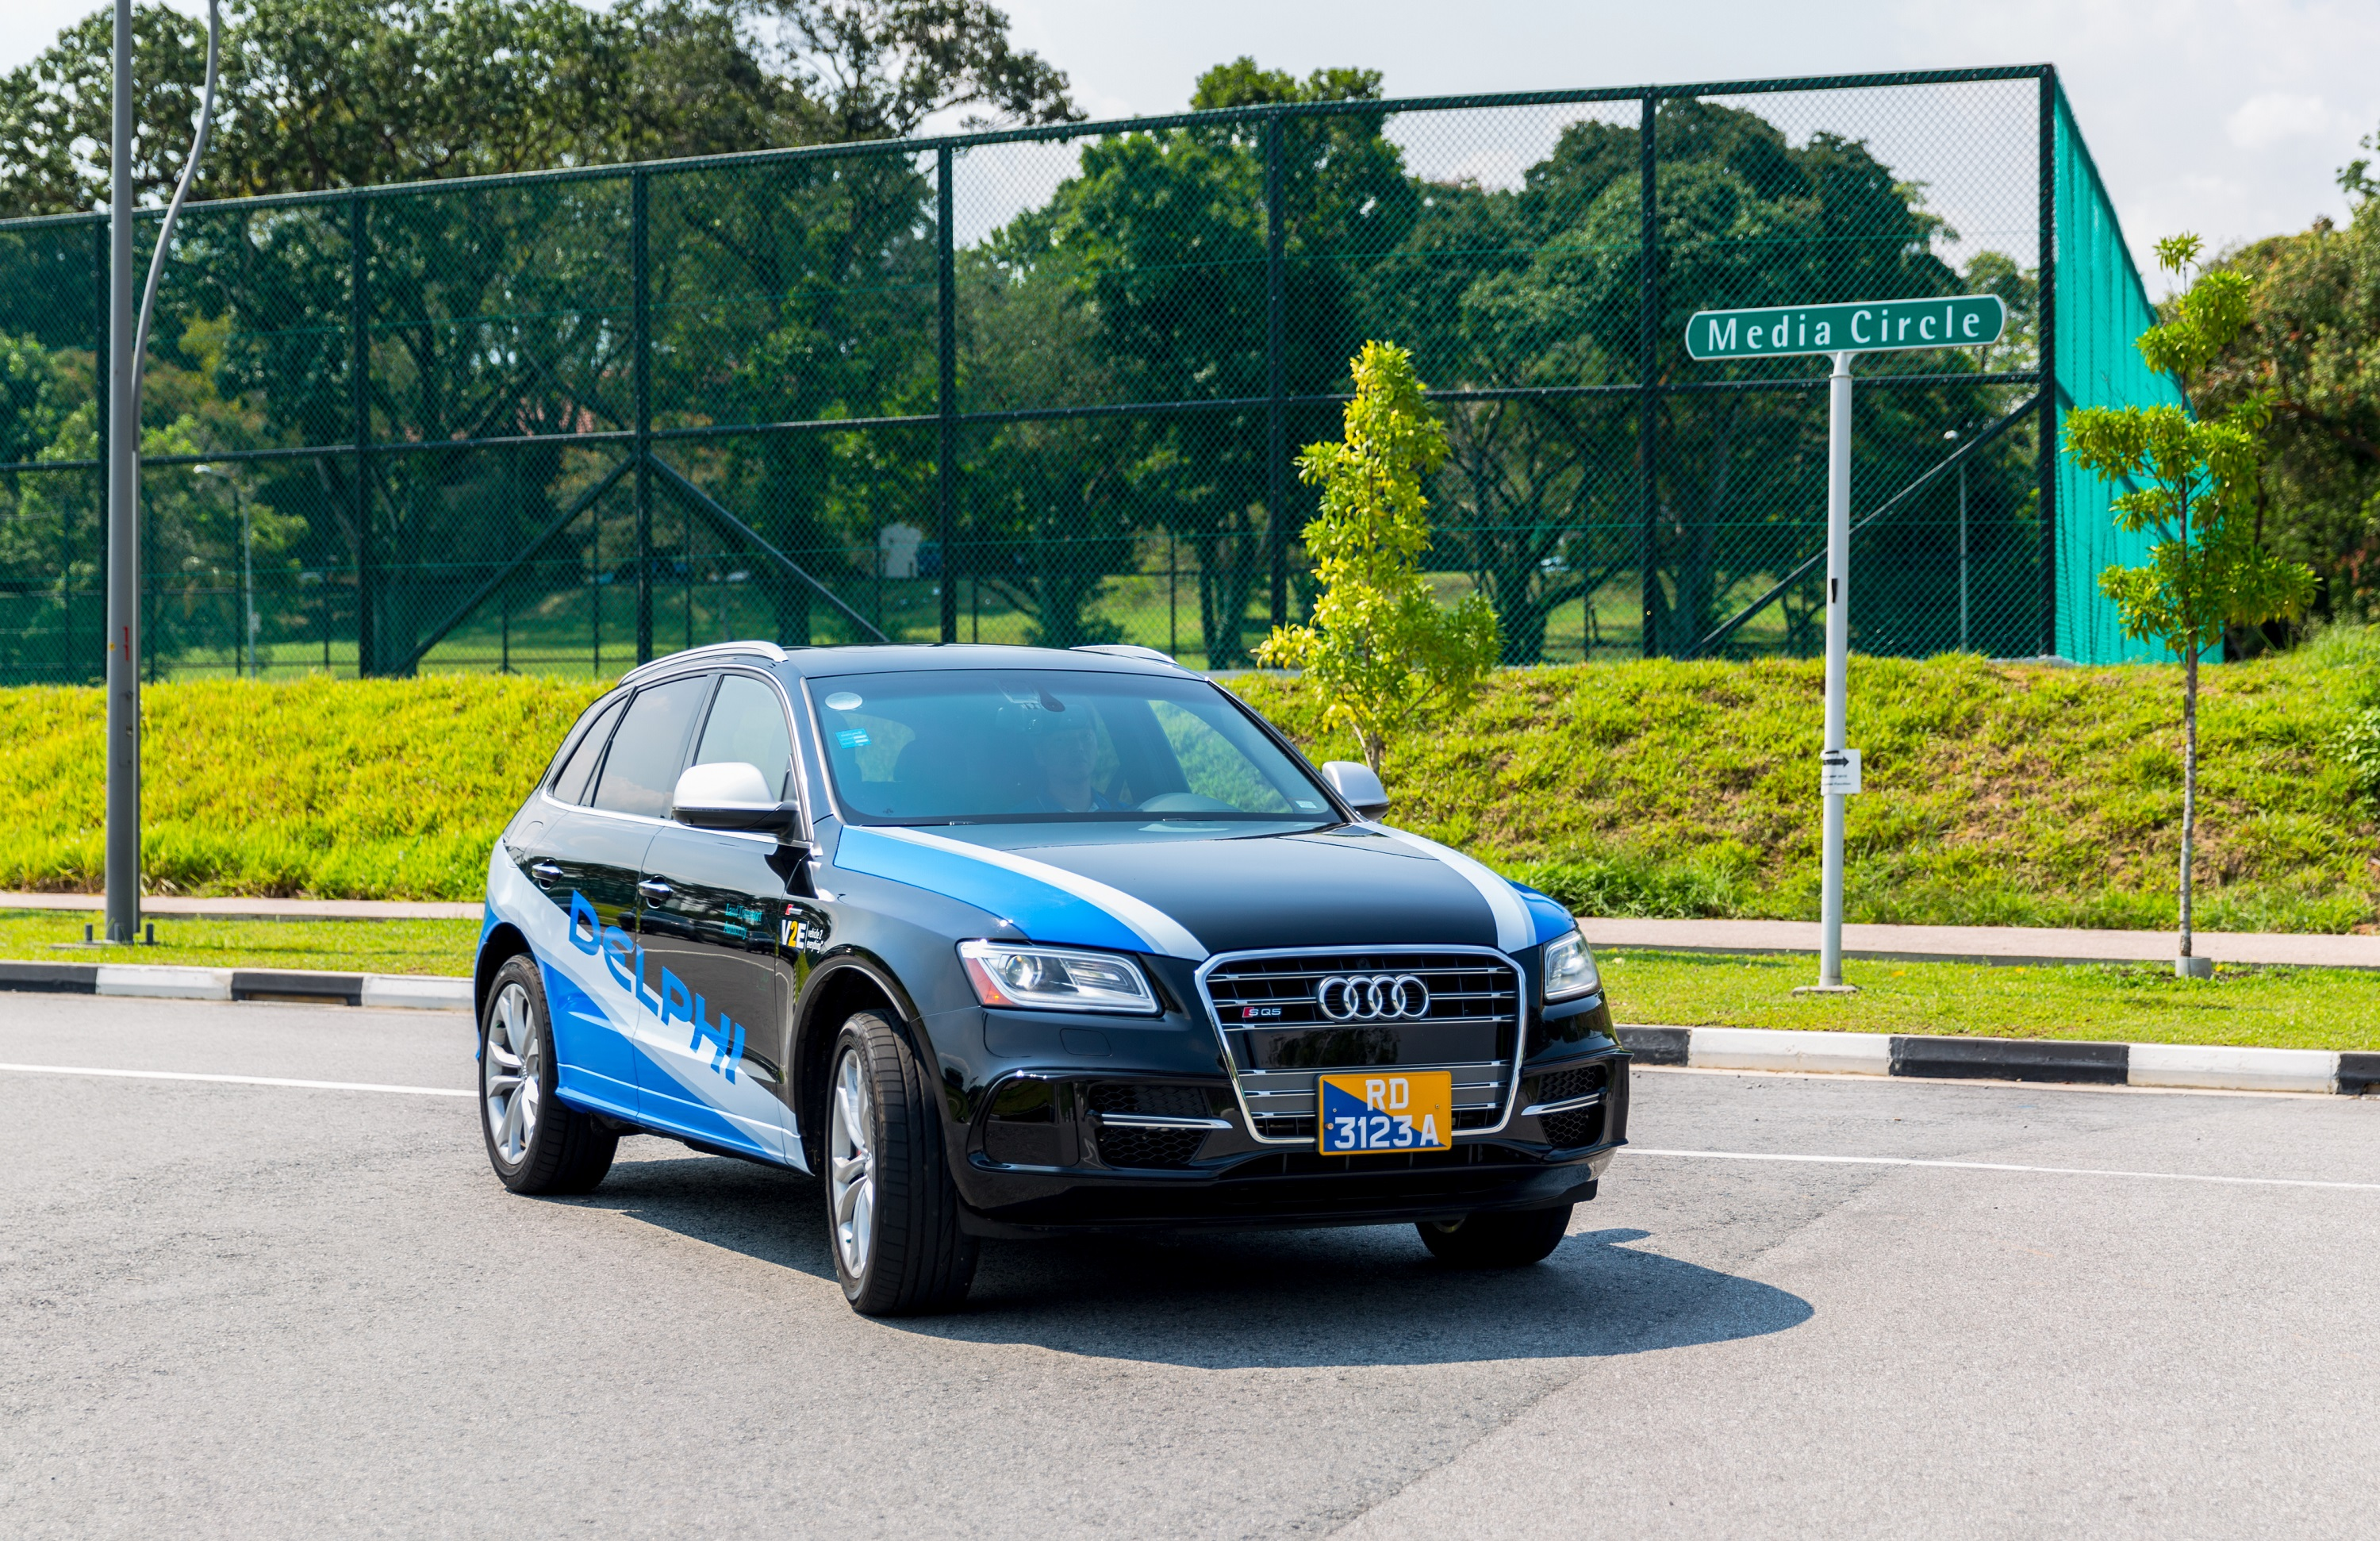 LTA Means Business About The Future Of Driverless Taxis